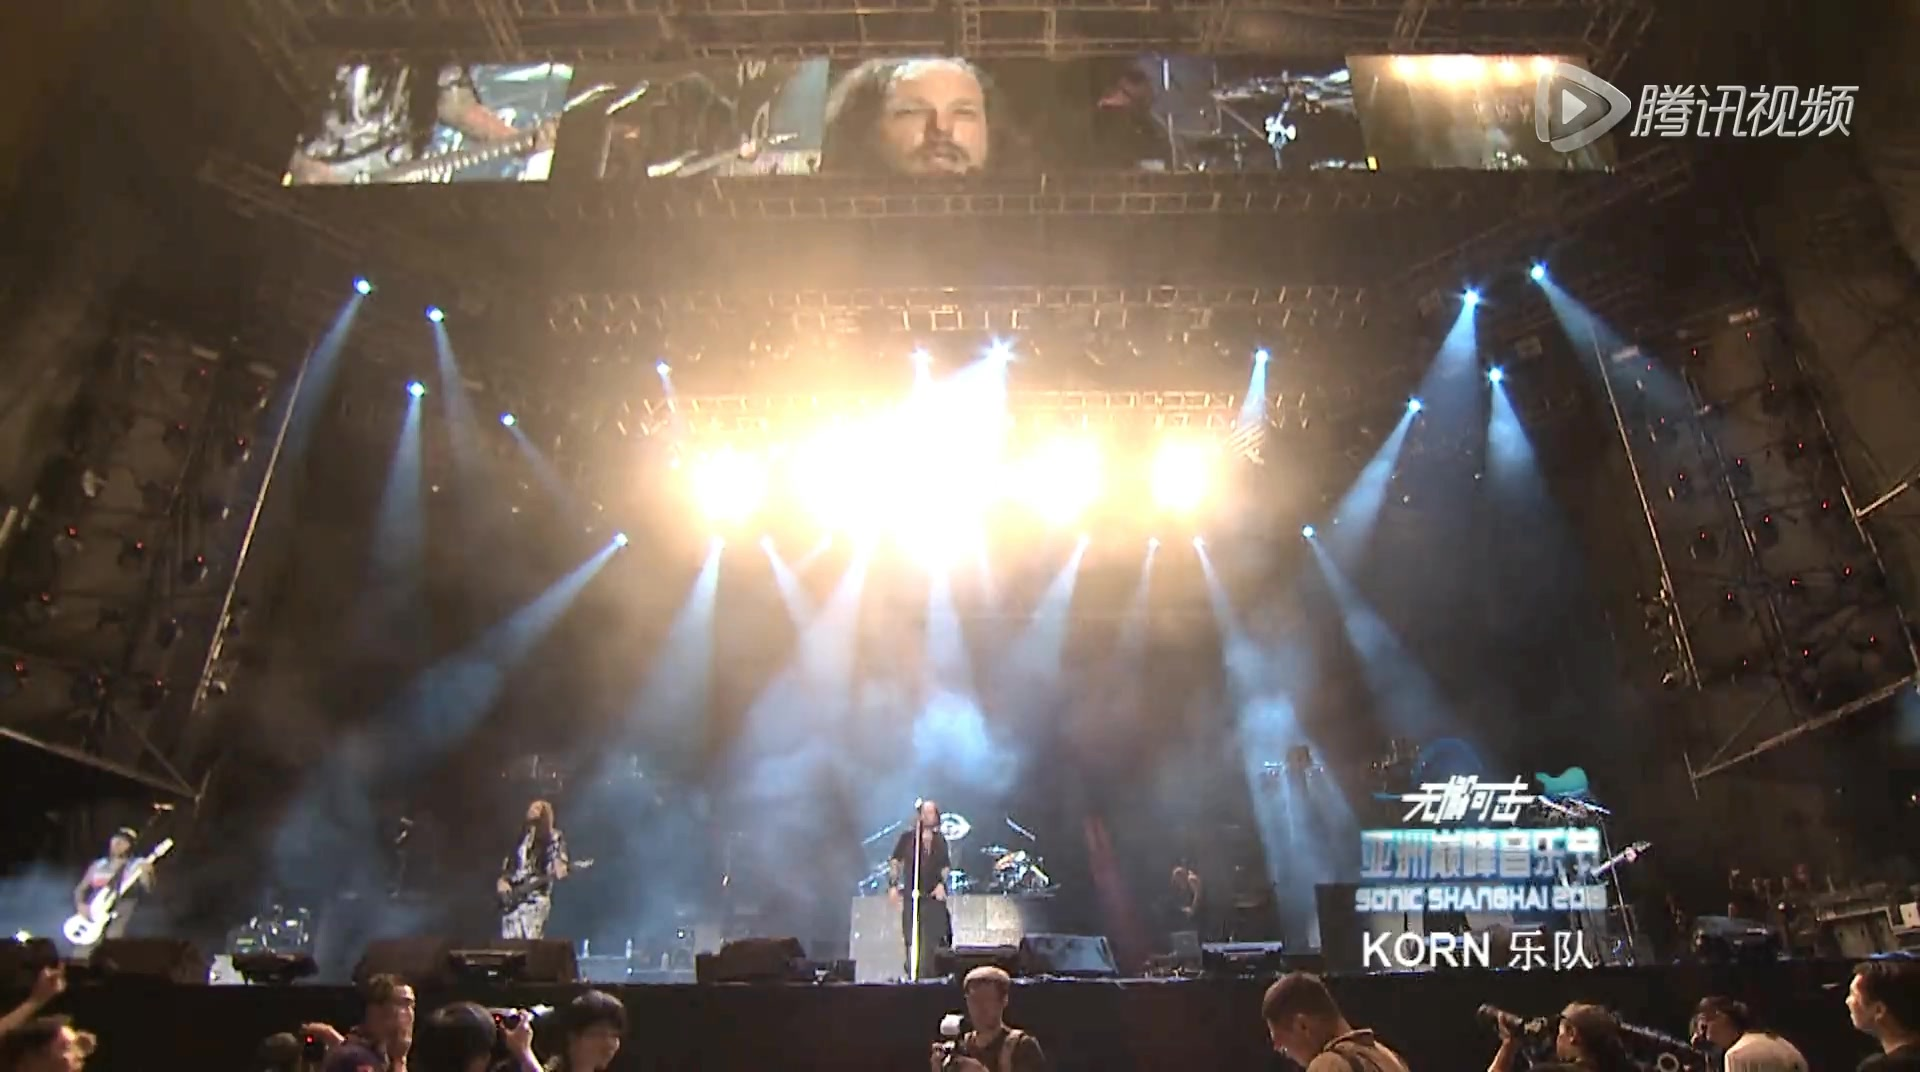 KoRn 2013-08-17 Shanghai Outdoor Stadium, Shanghai, China (Webcast HD 1080)